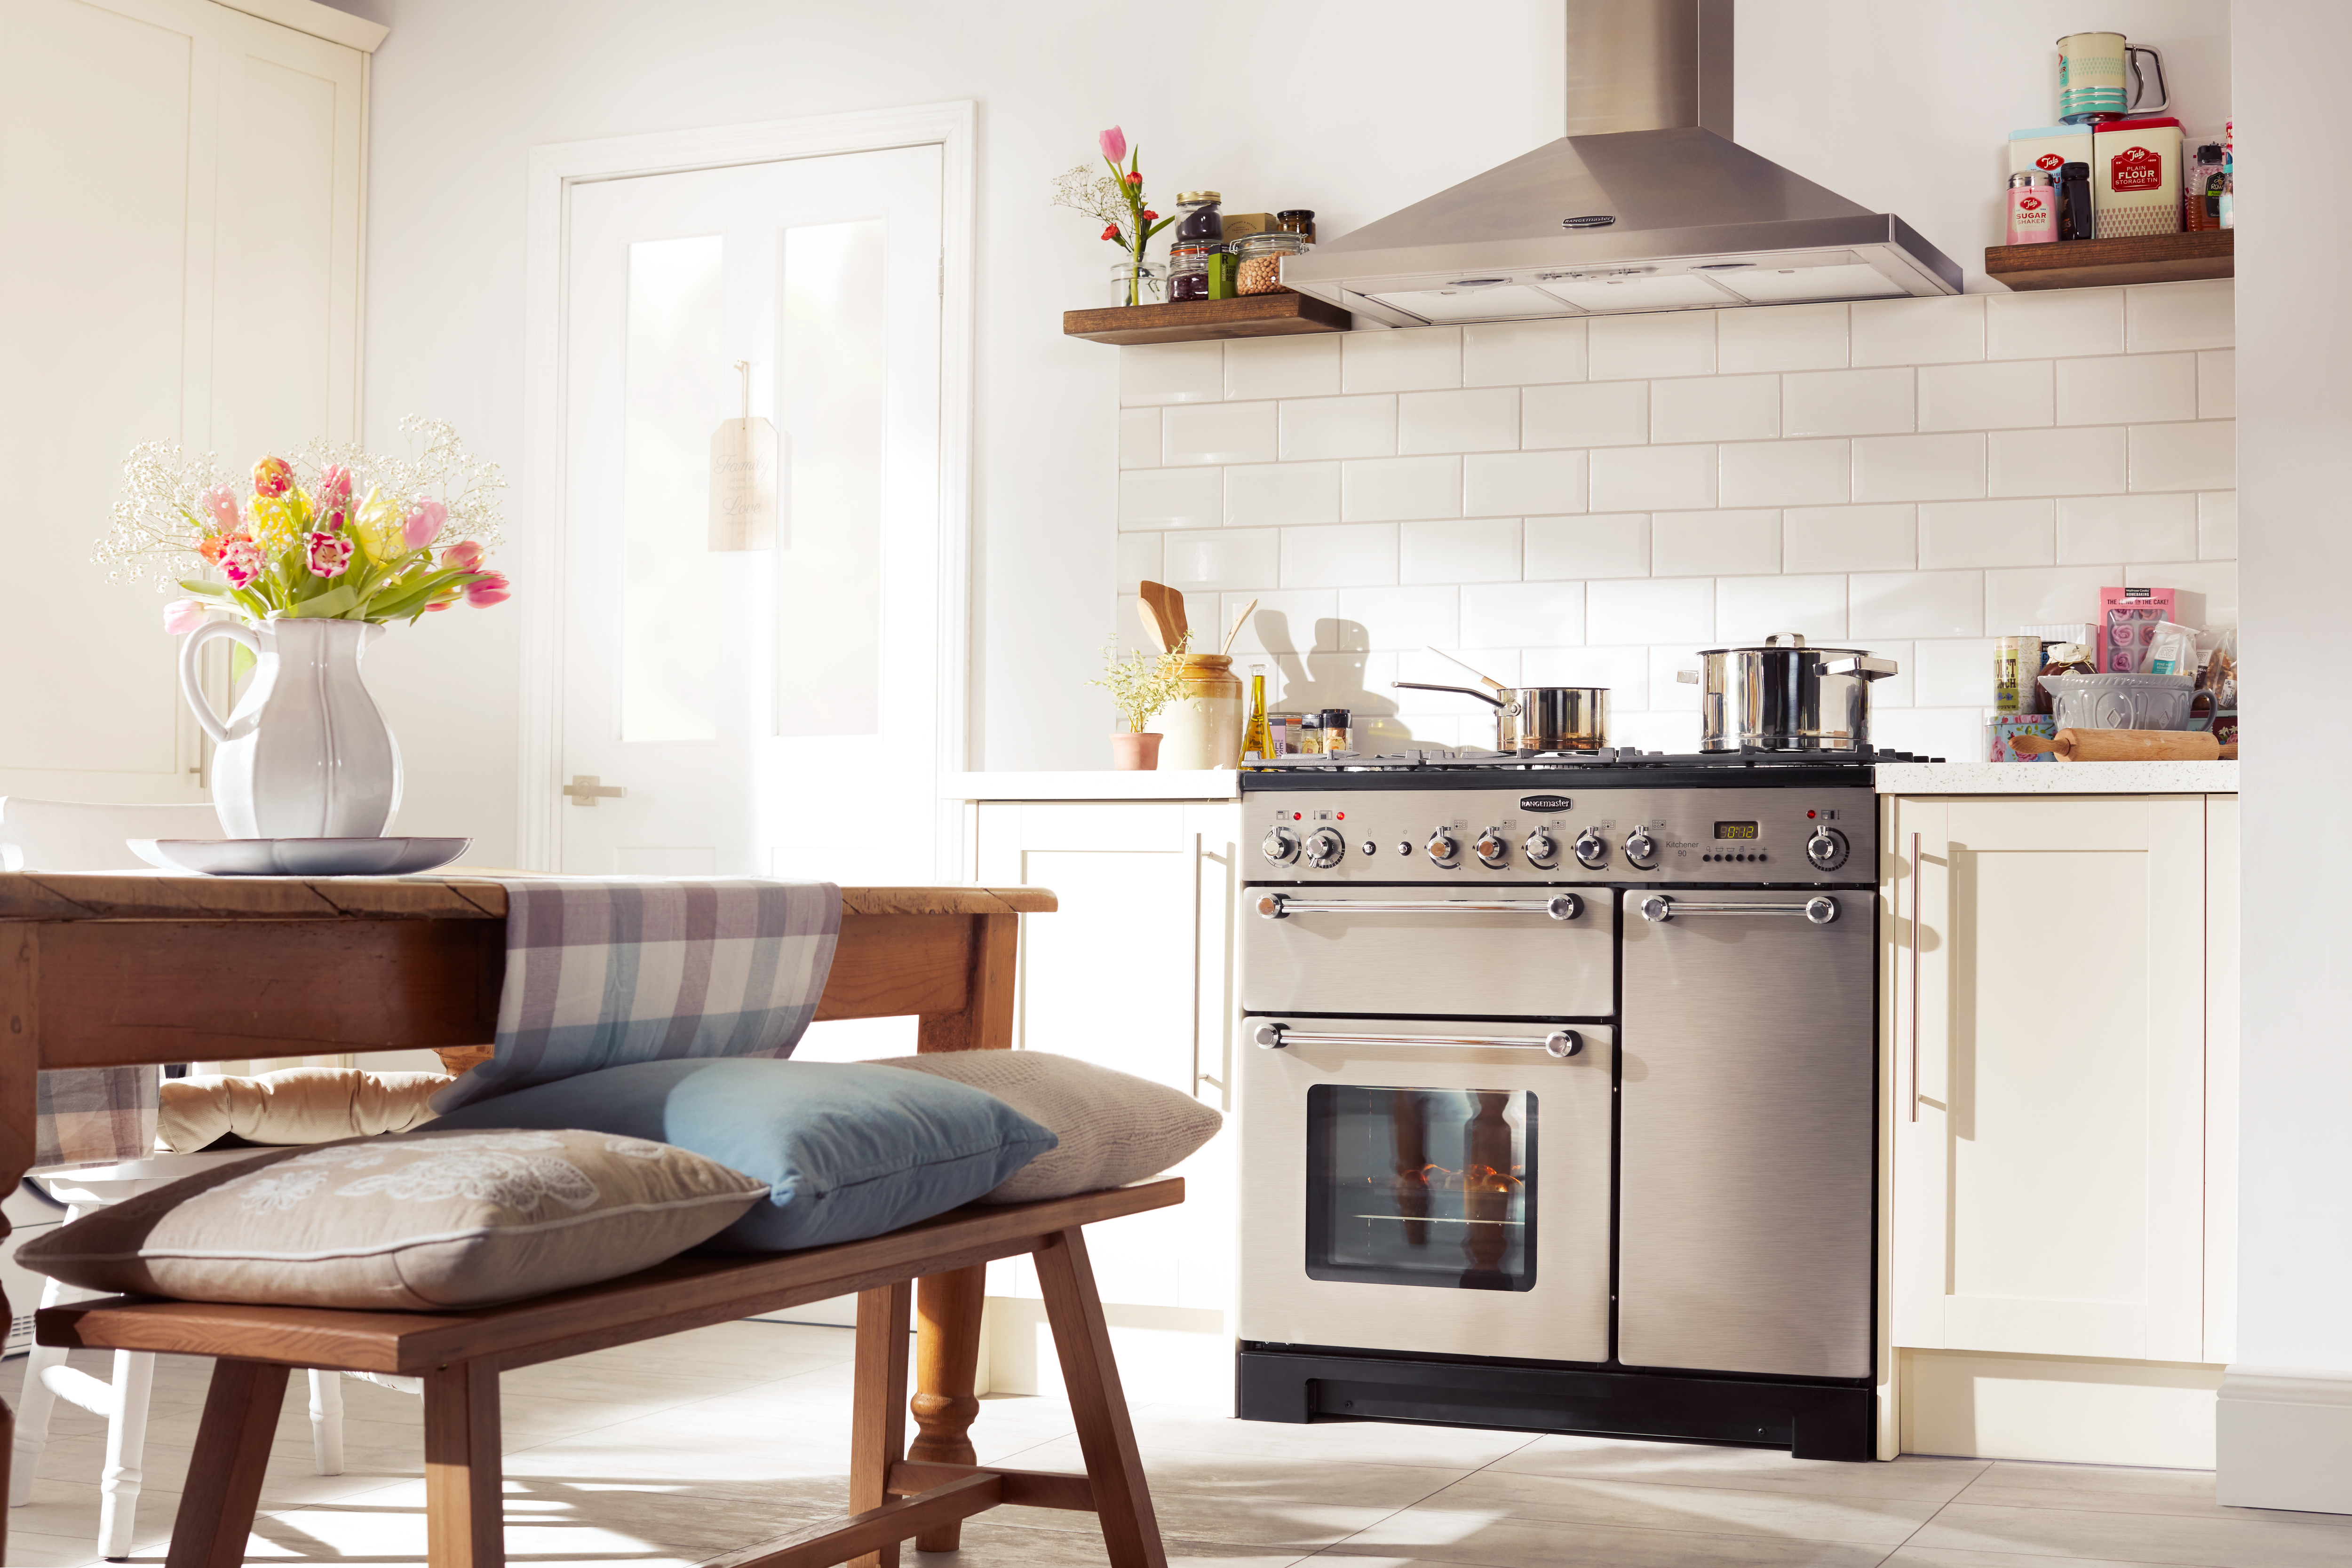 kitchen ovens cement tile cooking appliances deals currys freestanding vs built in which is right for me